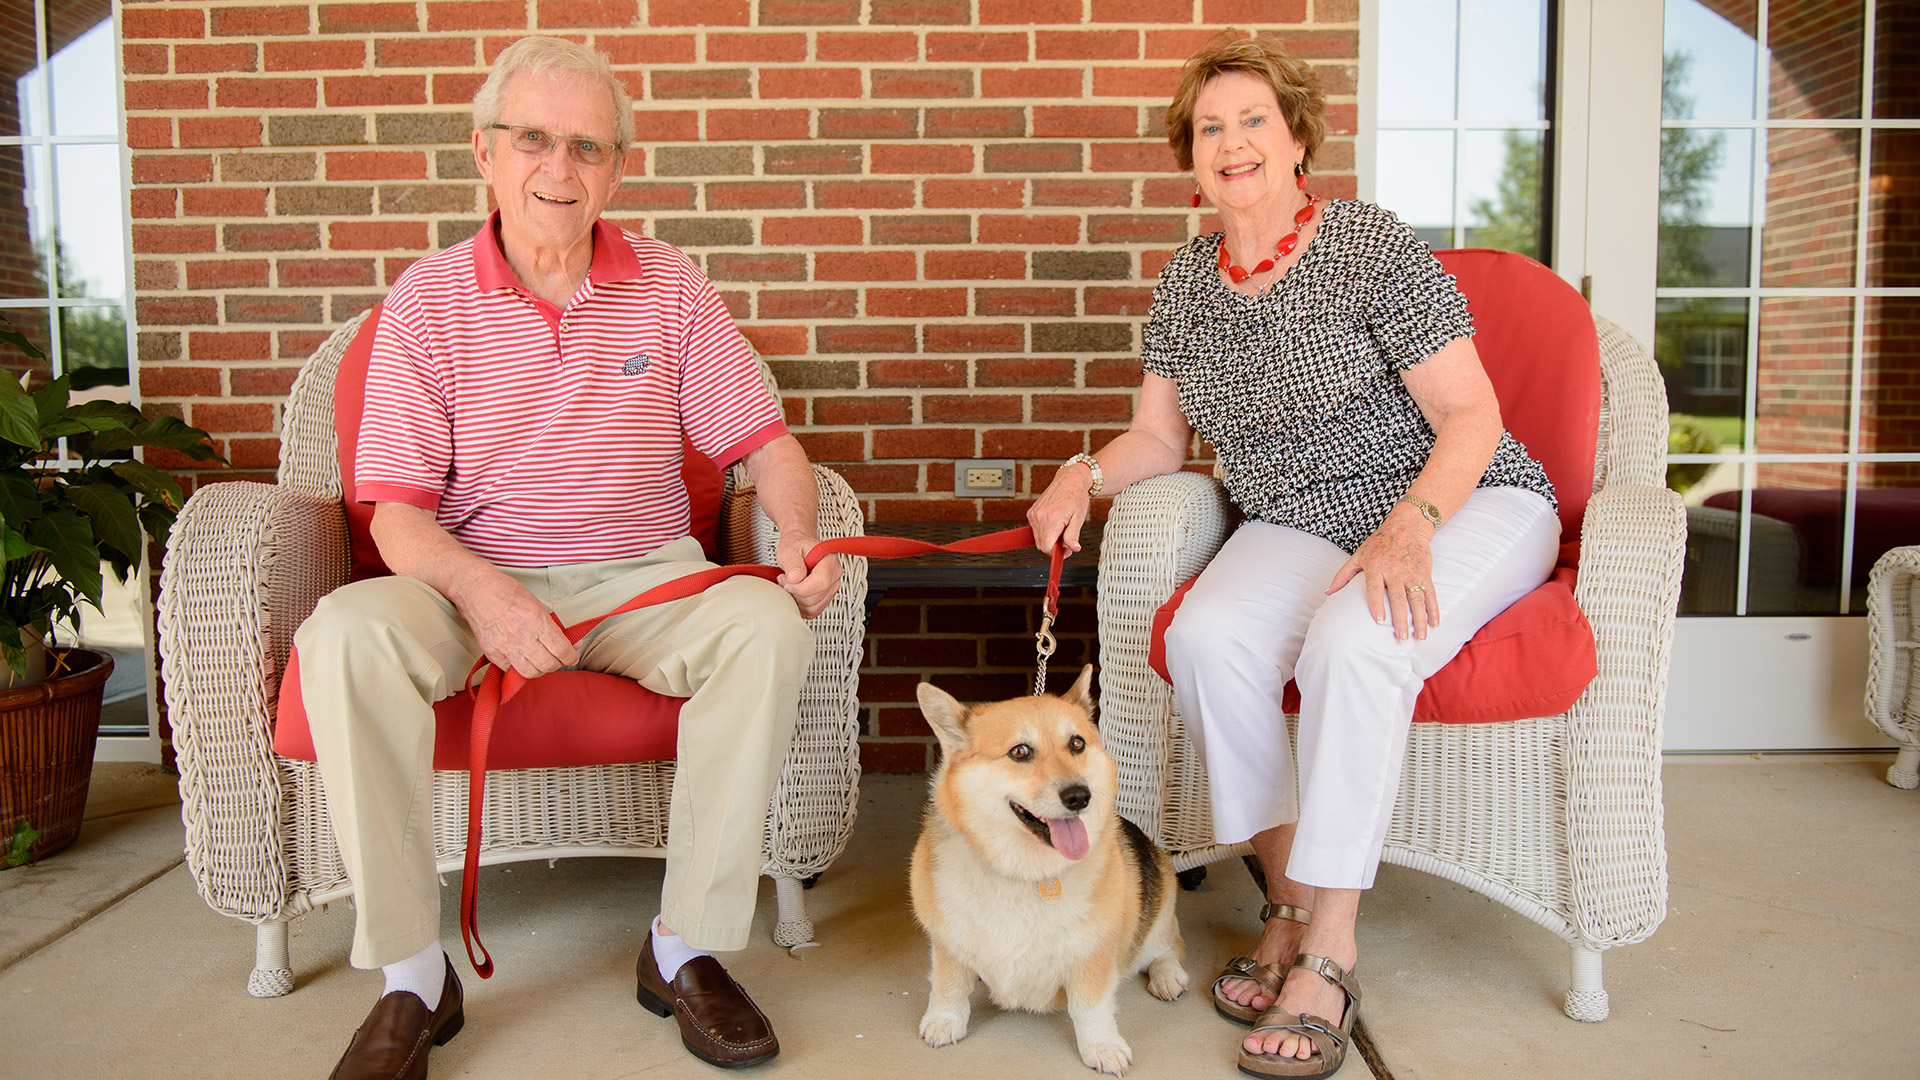 Smiling retiree couple relax outside Capstone Village in wicker chairs with their dog